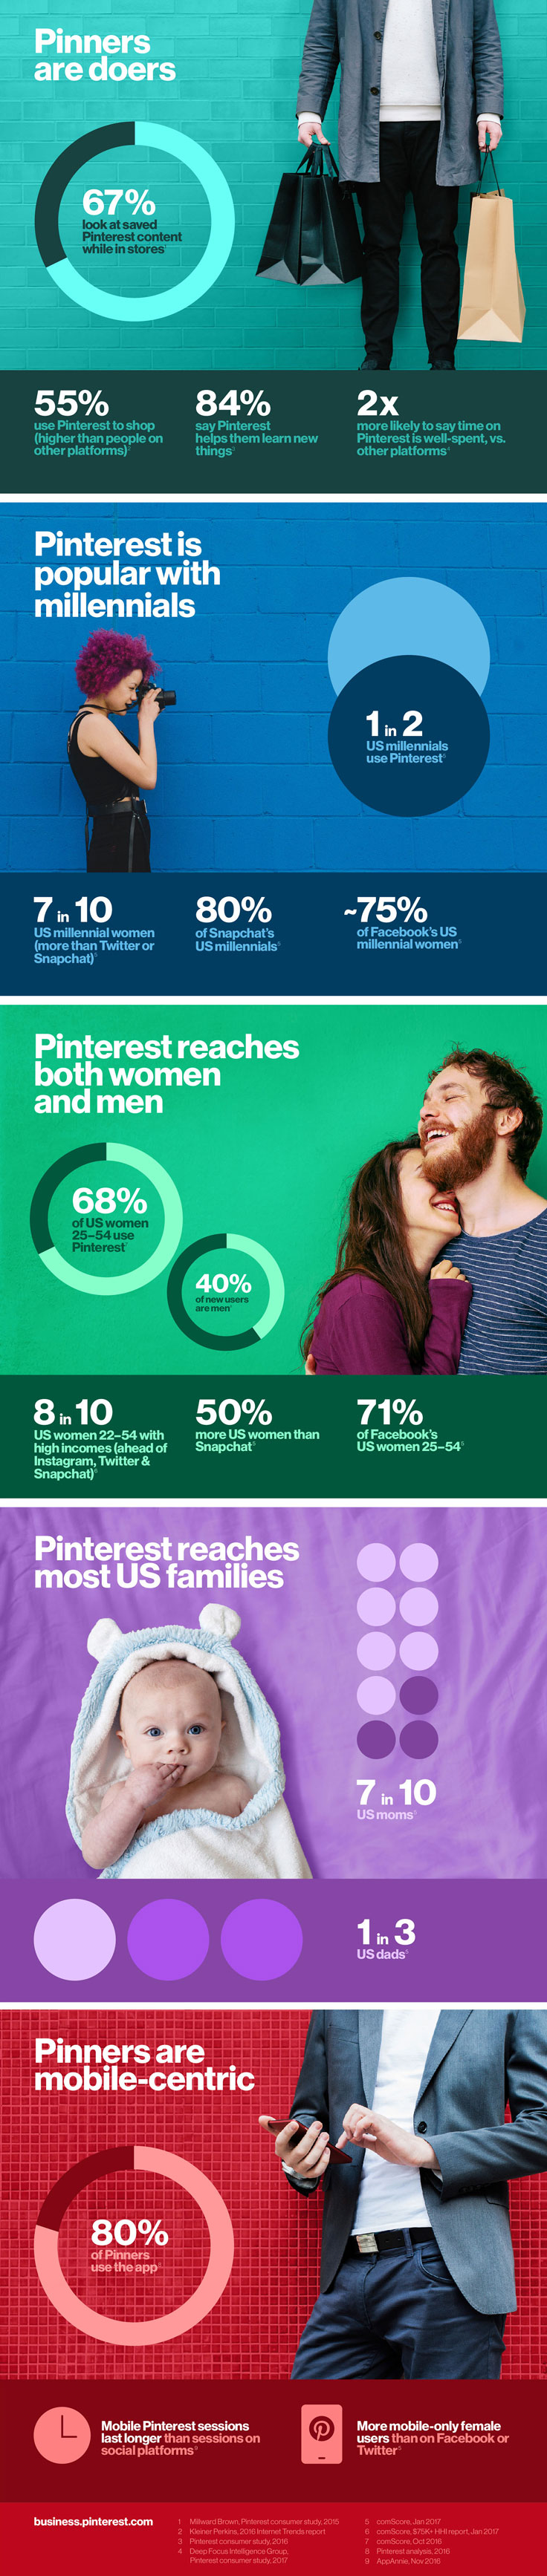 Who's using Pinterest? Should get to know these Pinterest users? Check this infographic to see if a Pinterest presence will benefit your business.